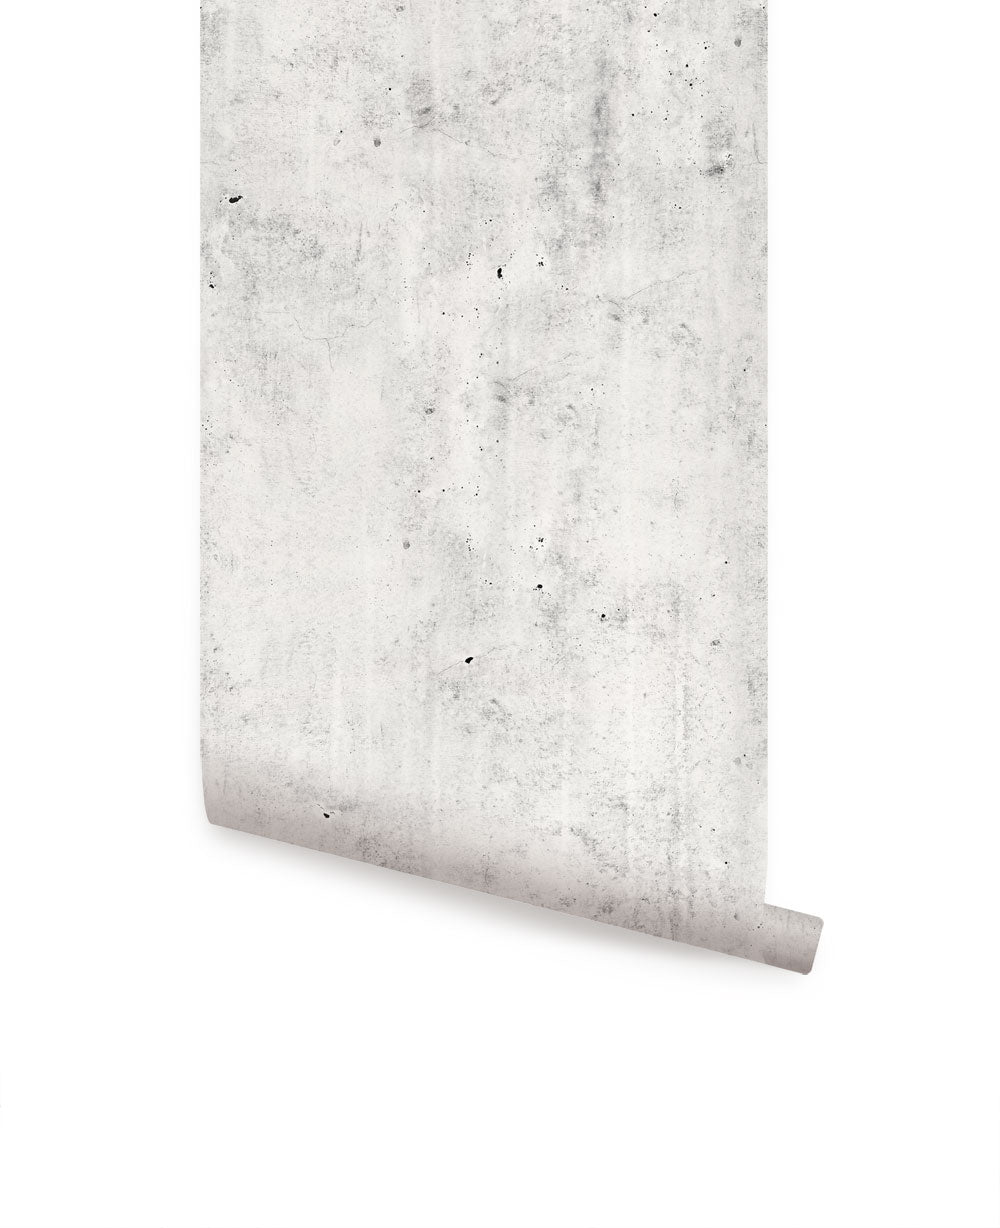 CEMENT CONCRETE WALLPAPER - PEEL AND STICK WALLPAPER